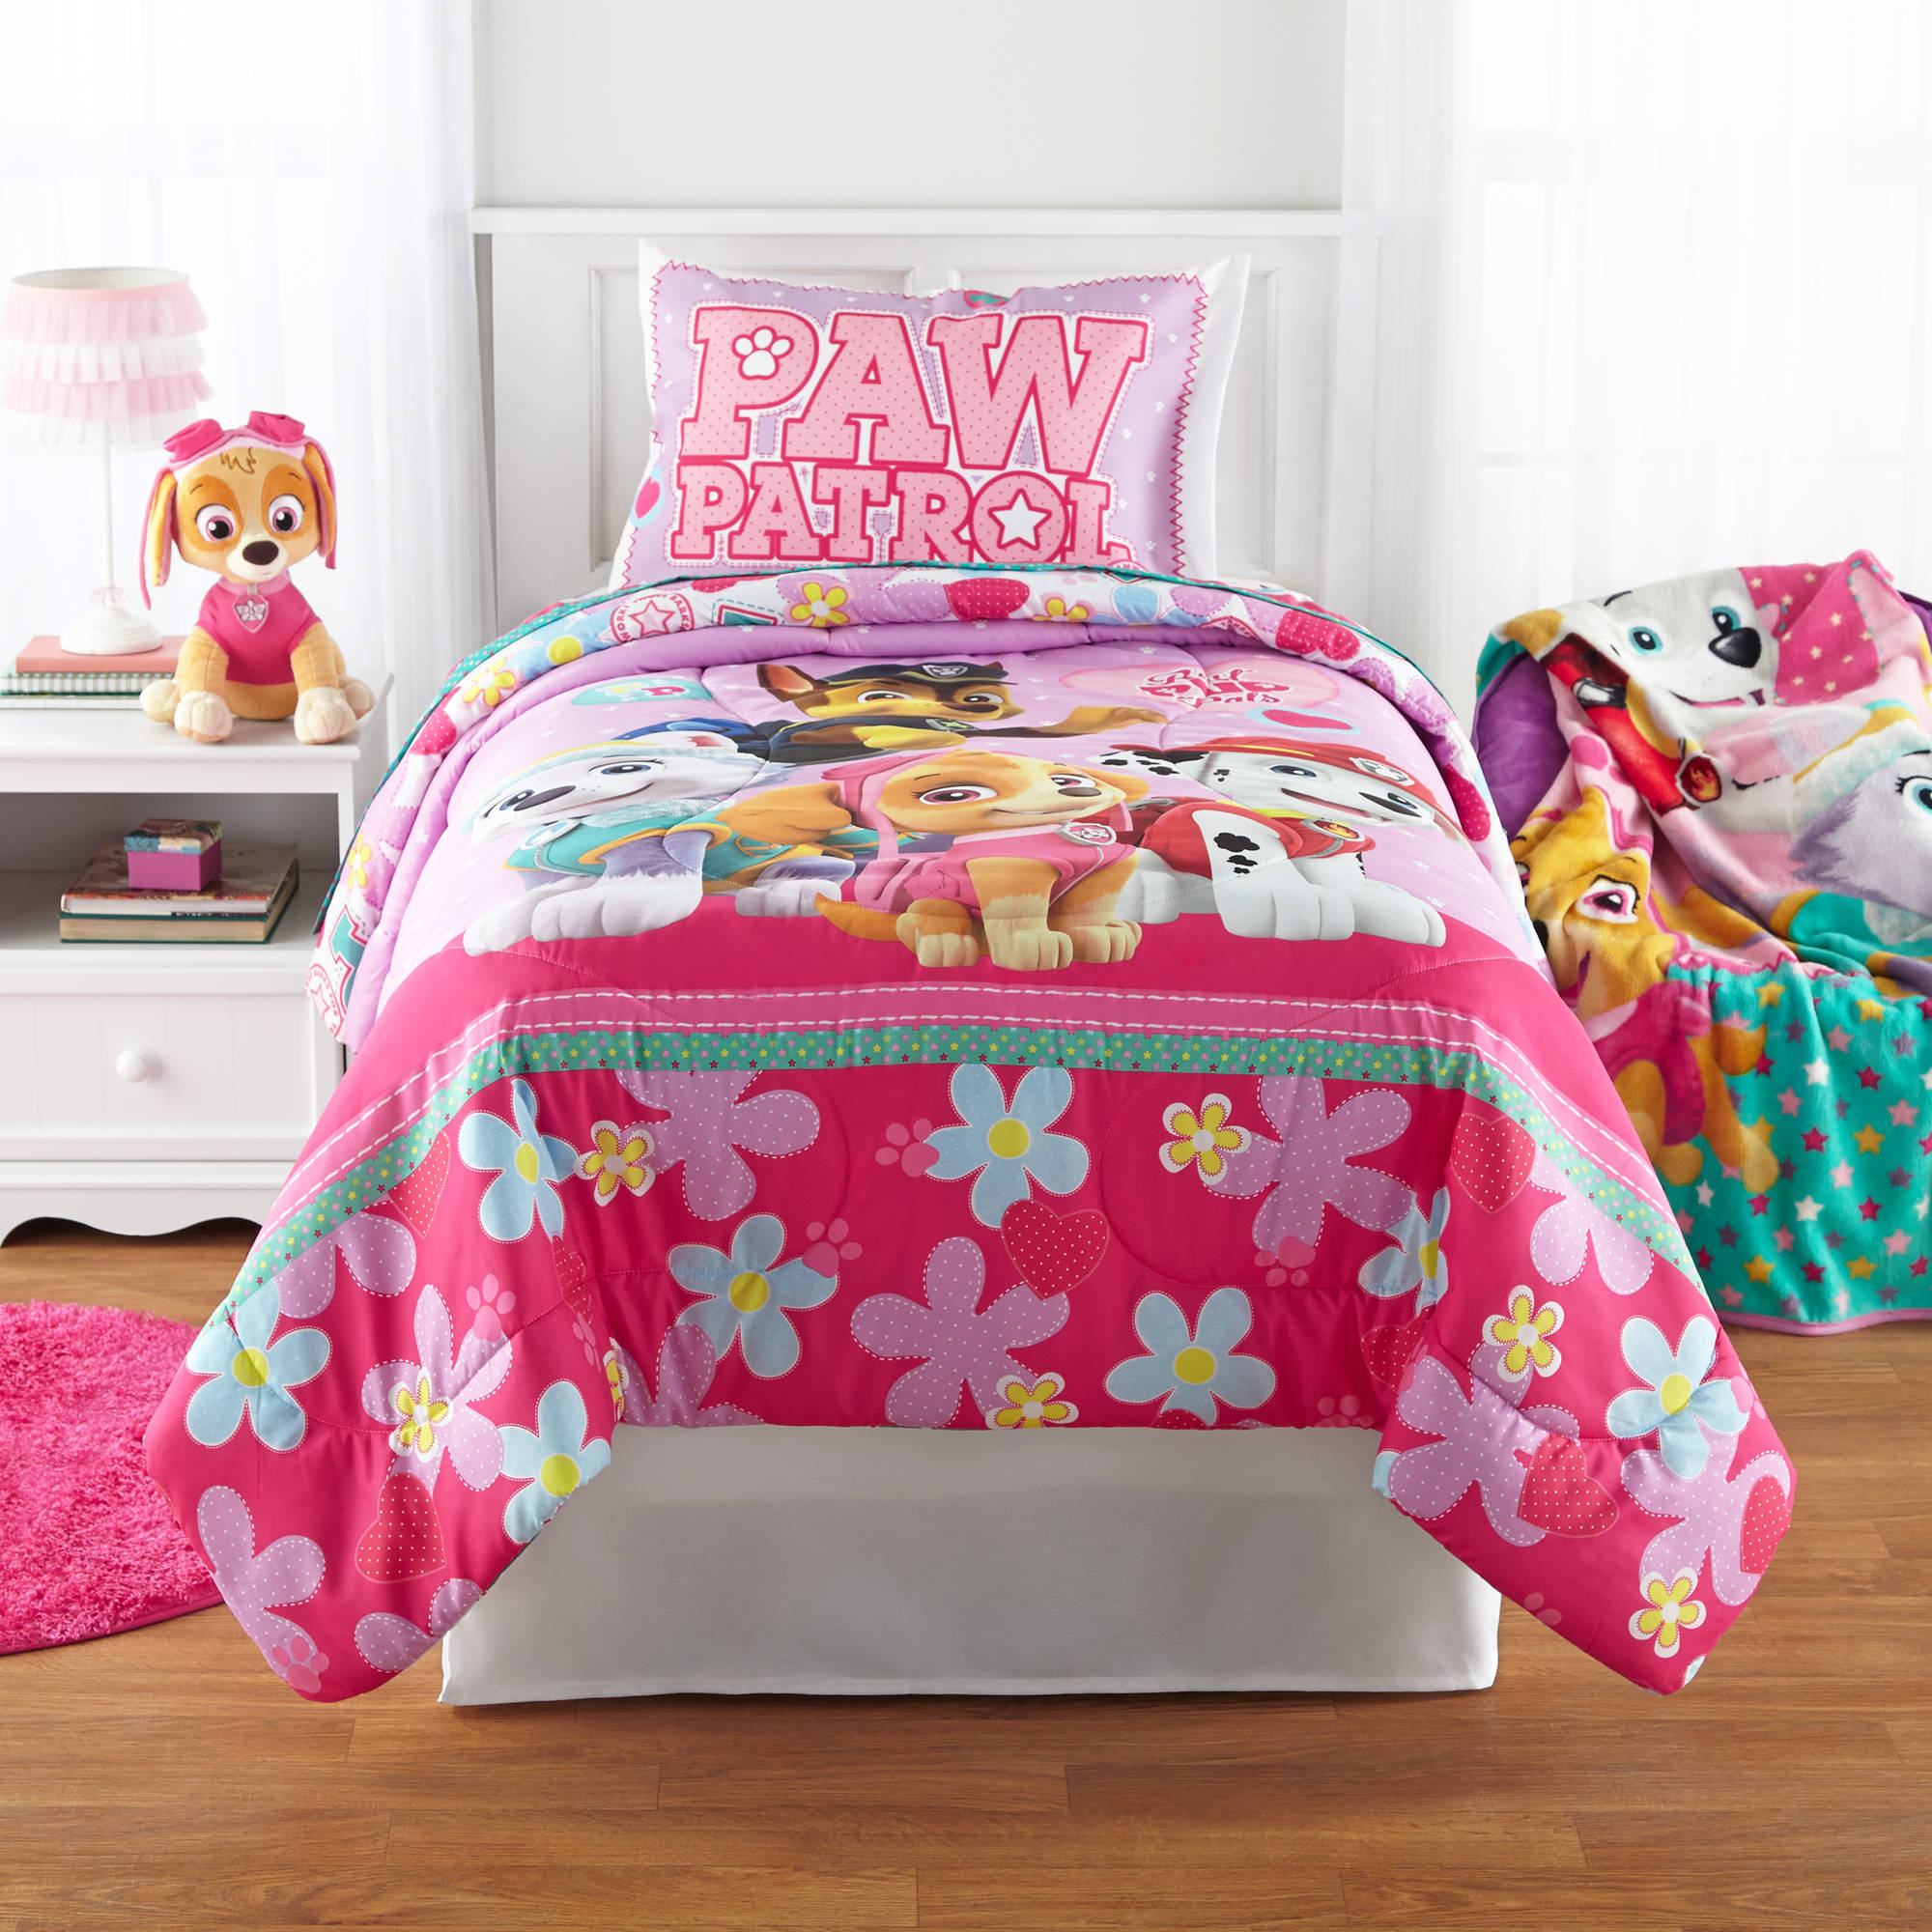 PAW Patrol Girl 'Best Pup' Reversible Twin/Full Comforter